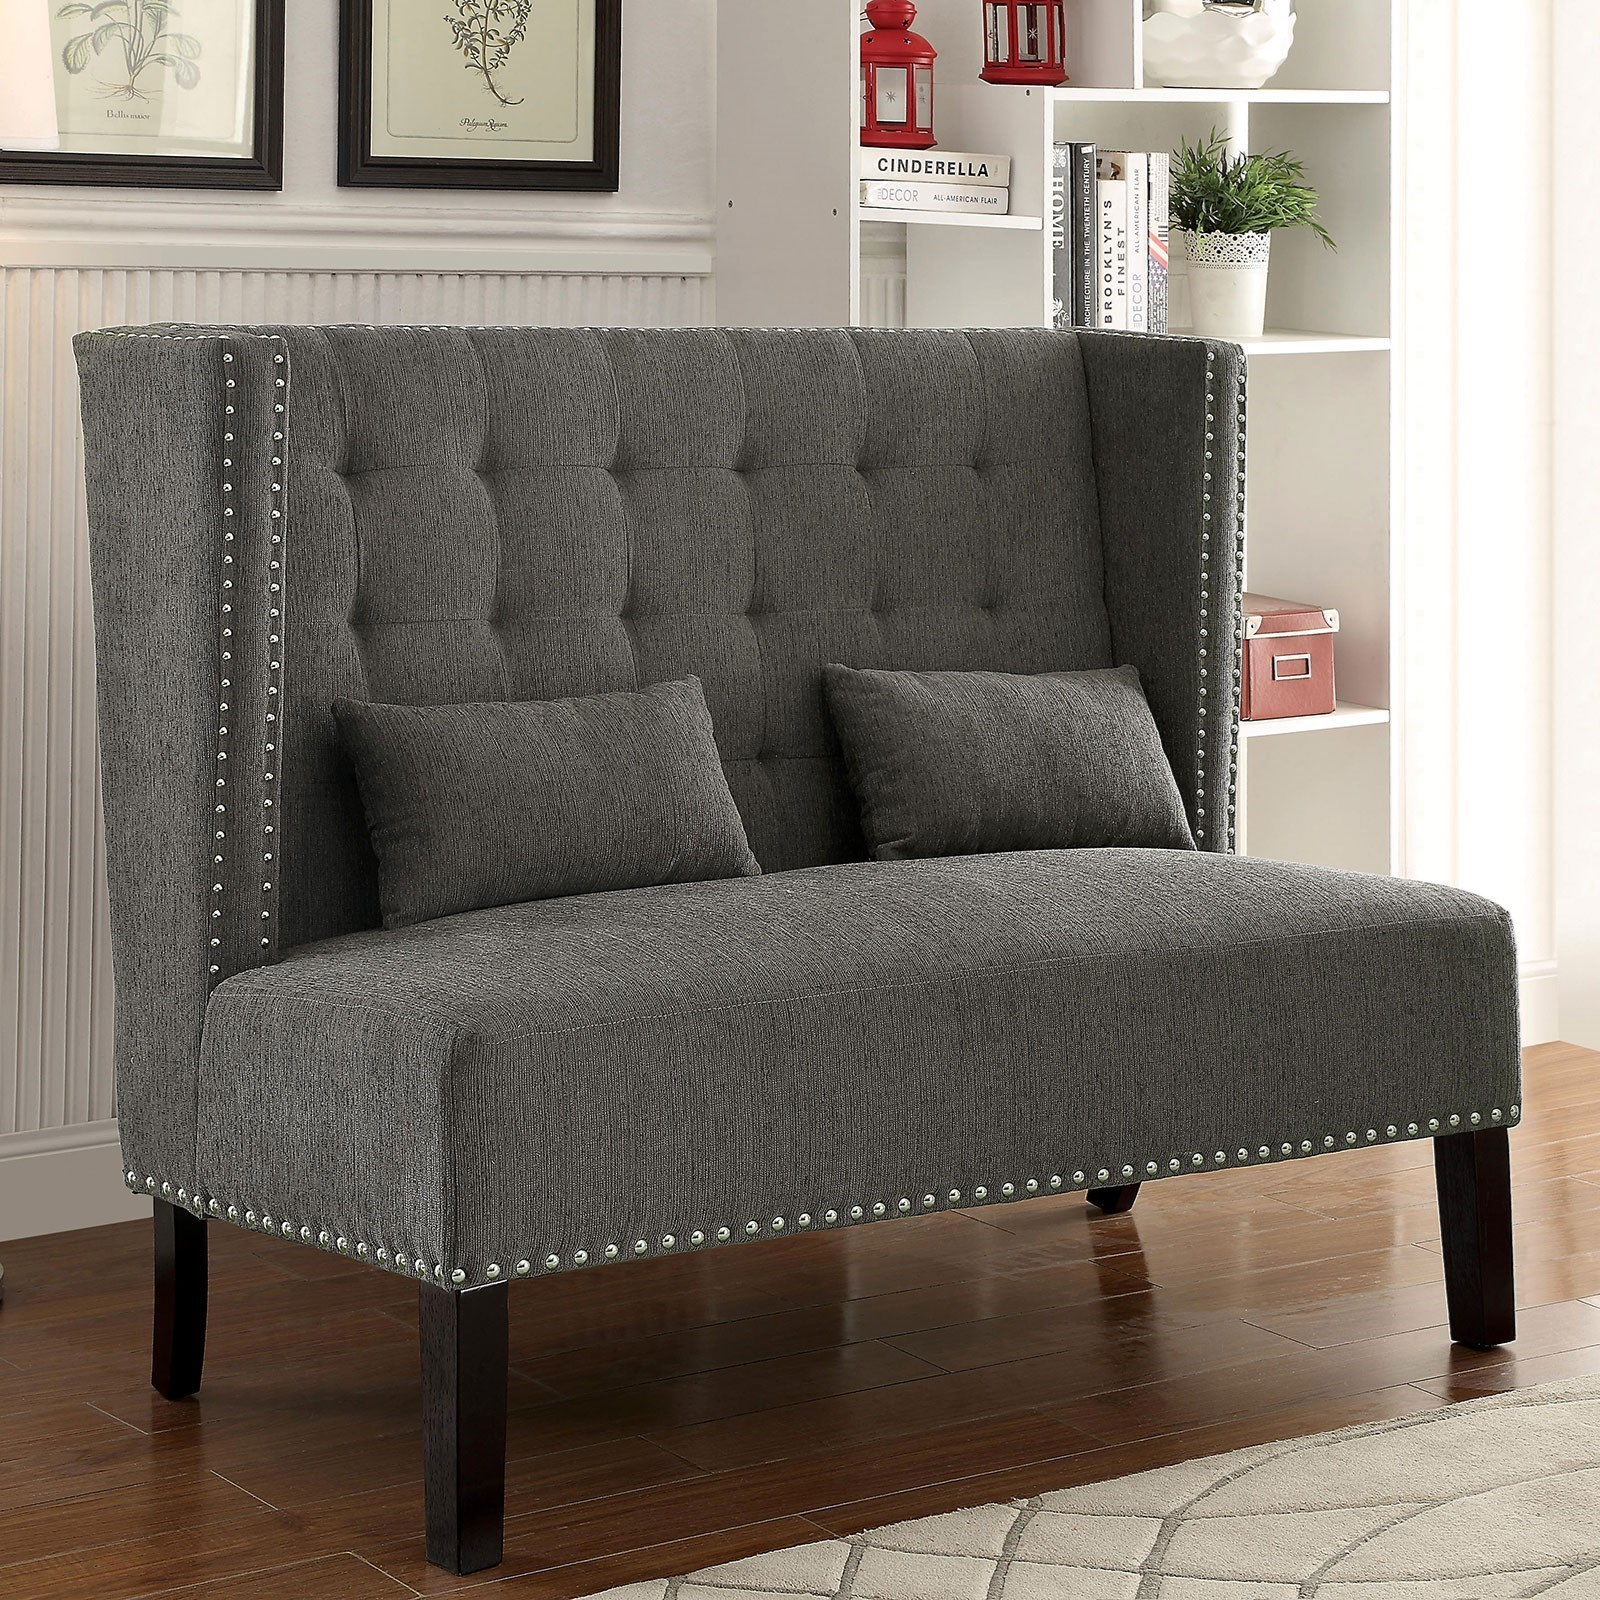 Amora Loveseat w/ Pillows at Household Furniture